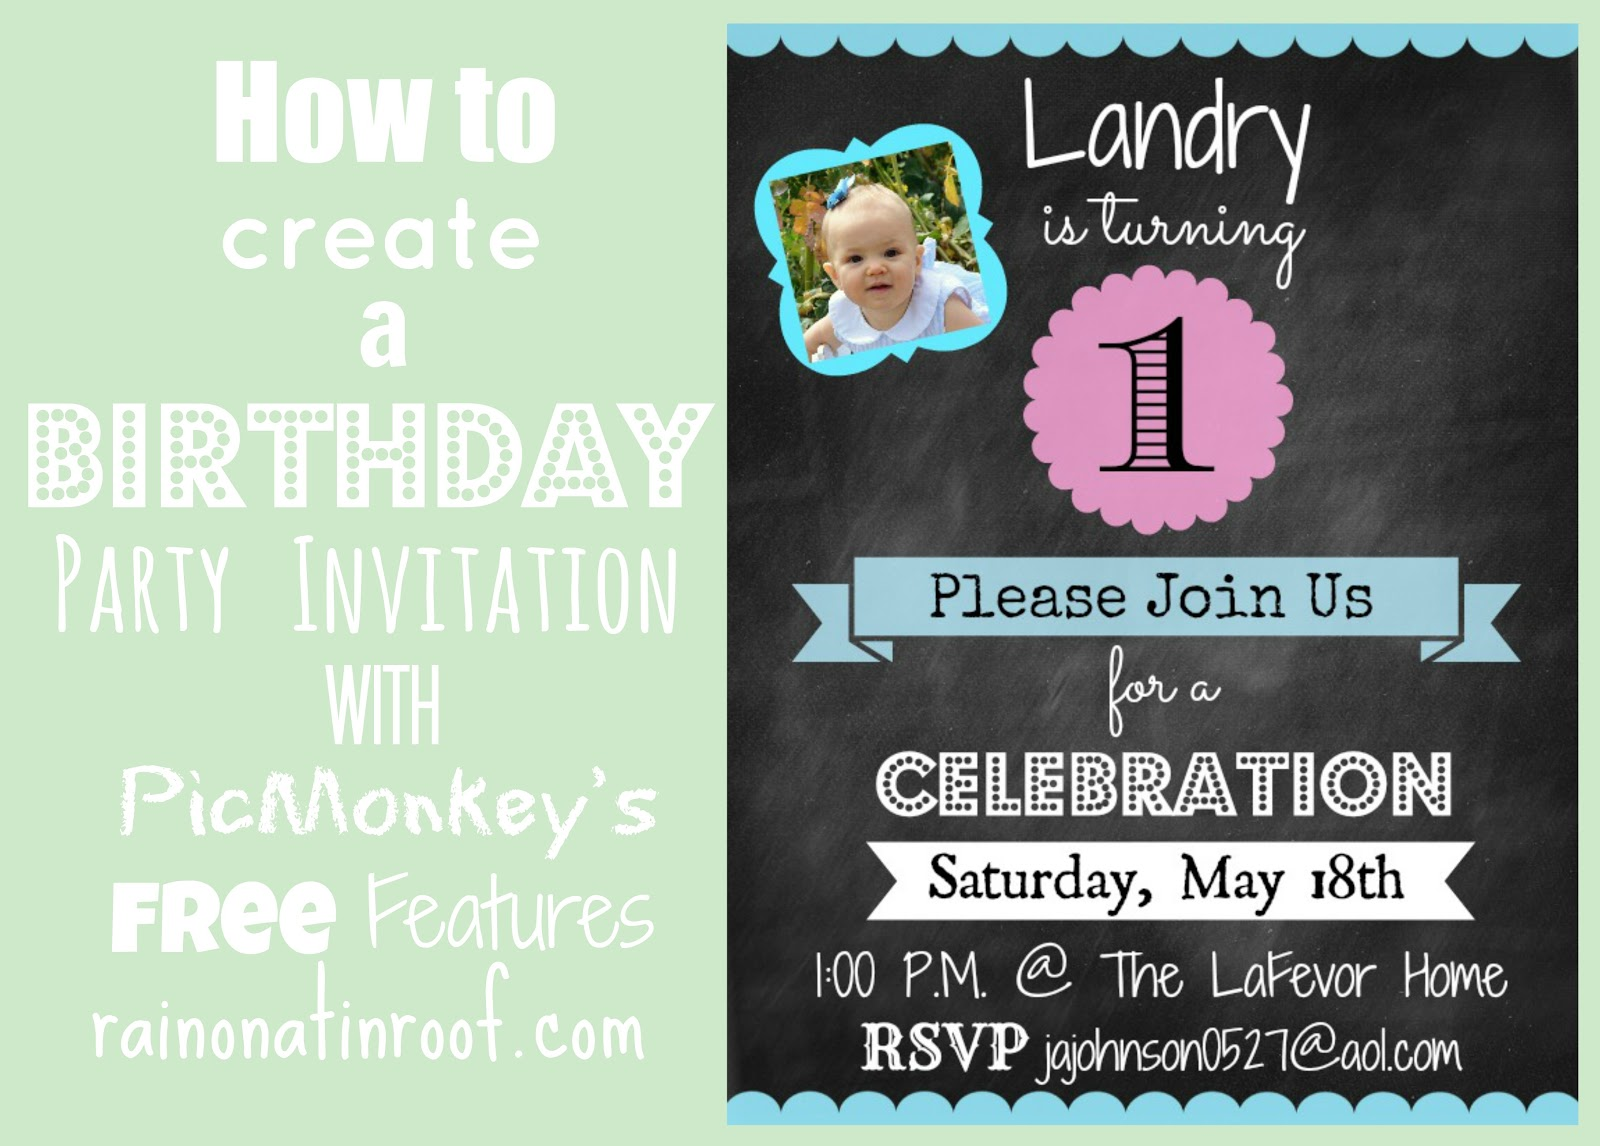 design birthday party invitations free ; how+to+create+a+birthday+party+invitation+with+picmonkeys+free+features